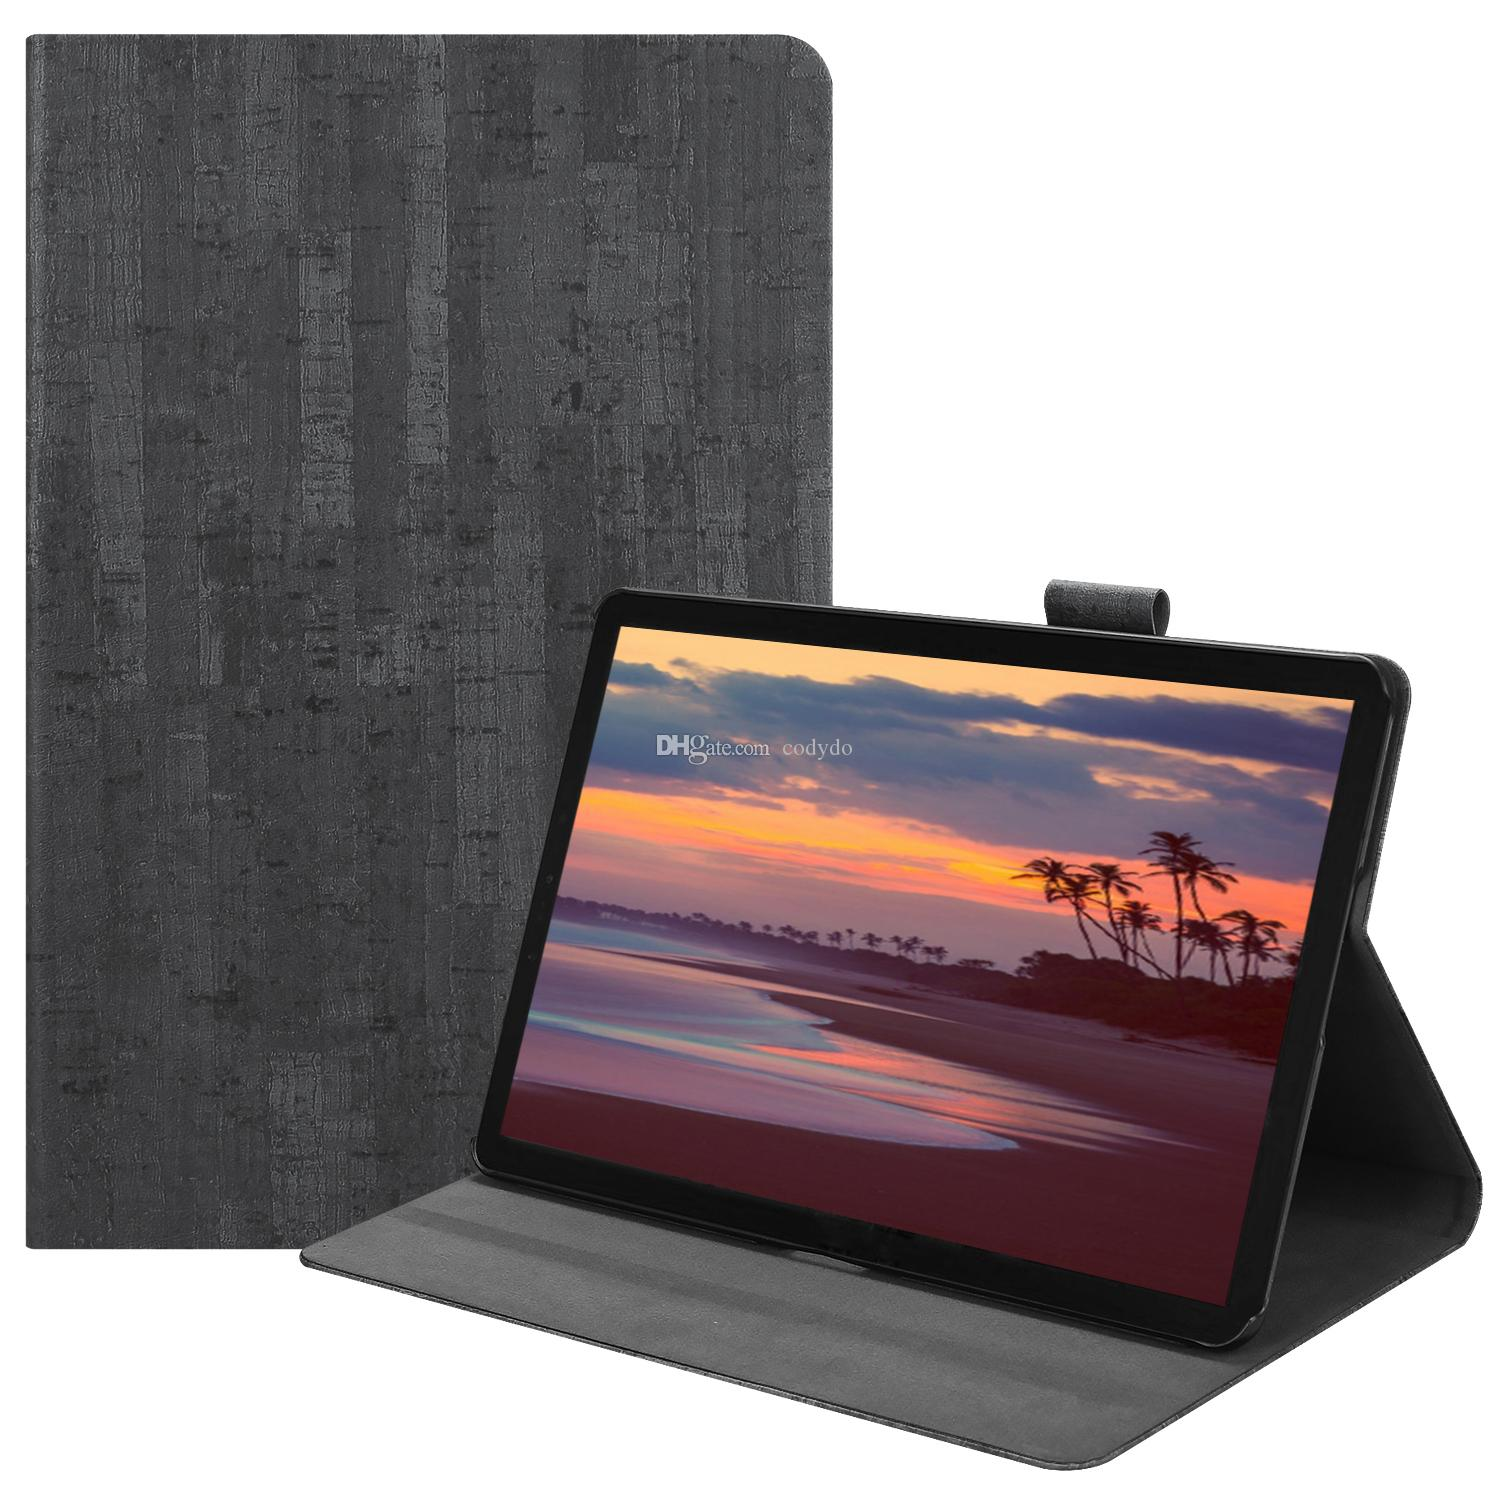 uk availability 3601e a6584 Samsung Galaxy Tab S4 10.5 Inch 2018 Case,Leather Smart Cover For Galaxy  Tab S4 10.5 2018